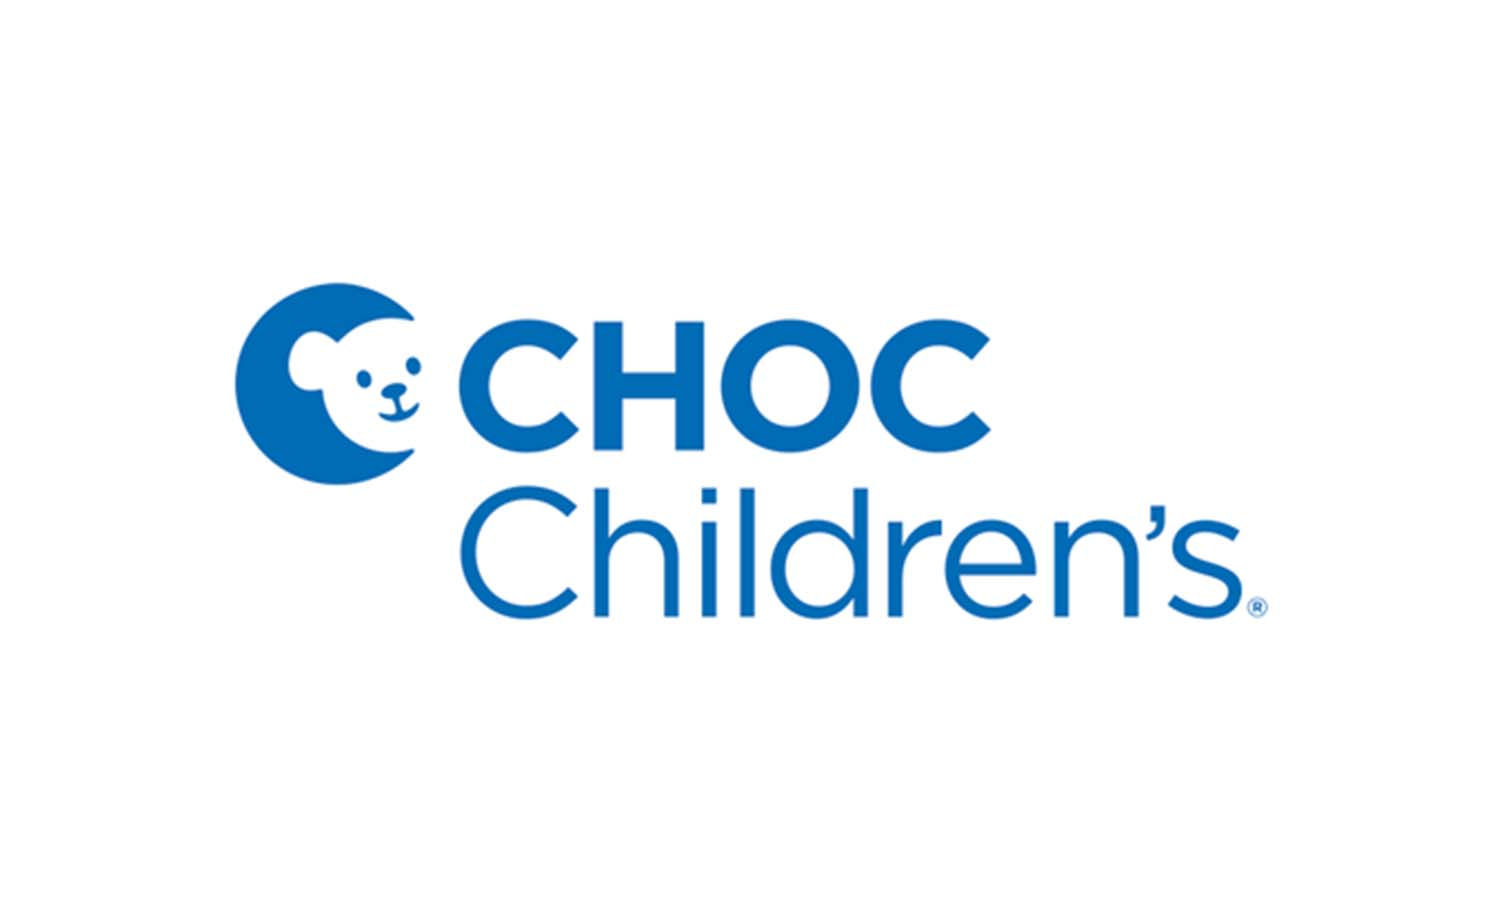 CHOC'S Growing Reputation as a Destination for Kids with Rare Conditions